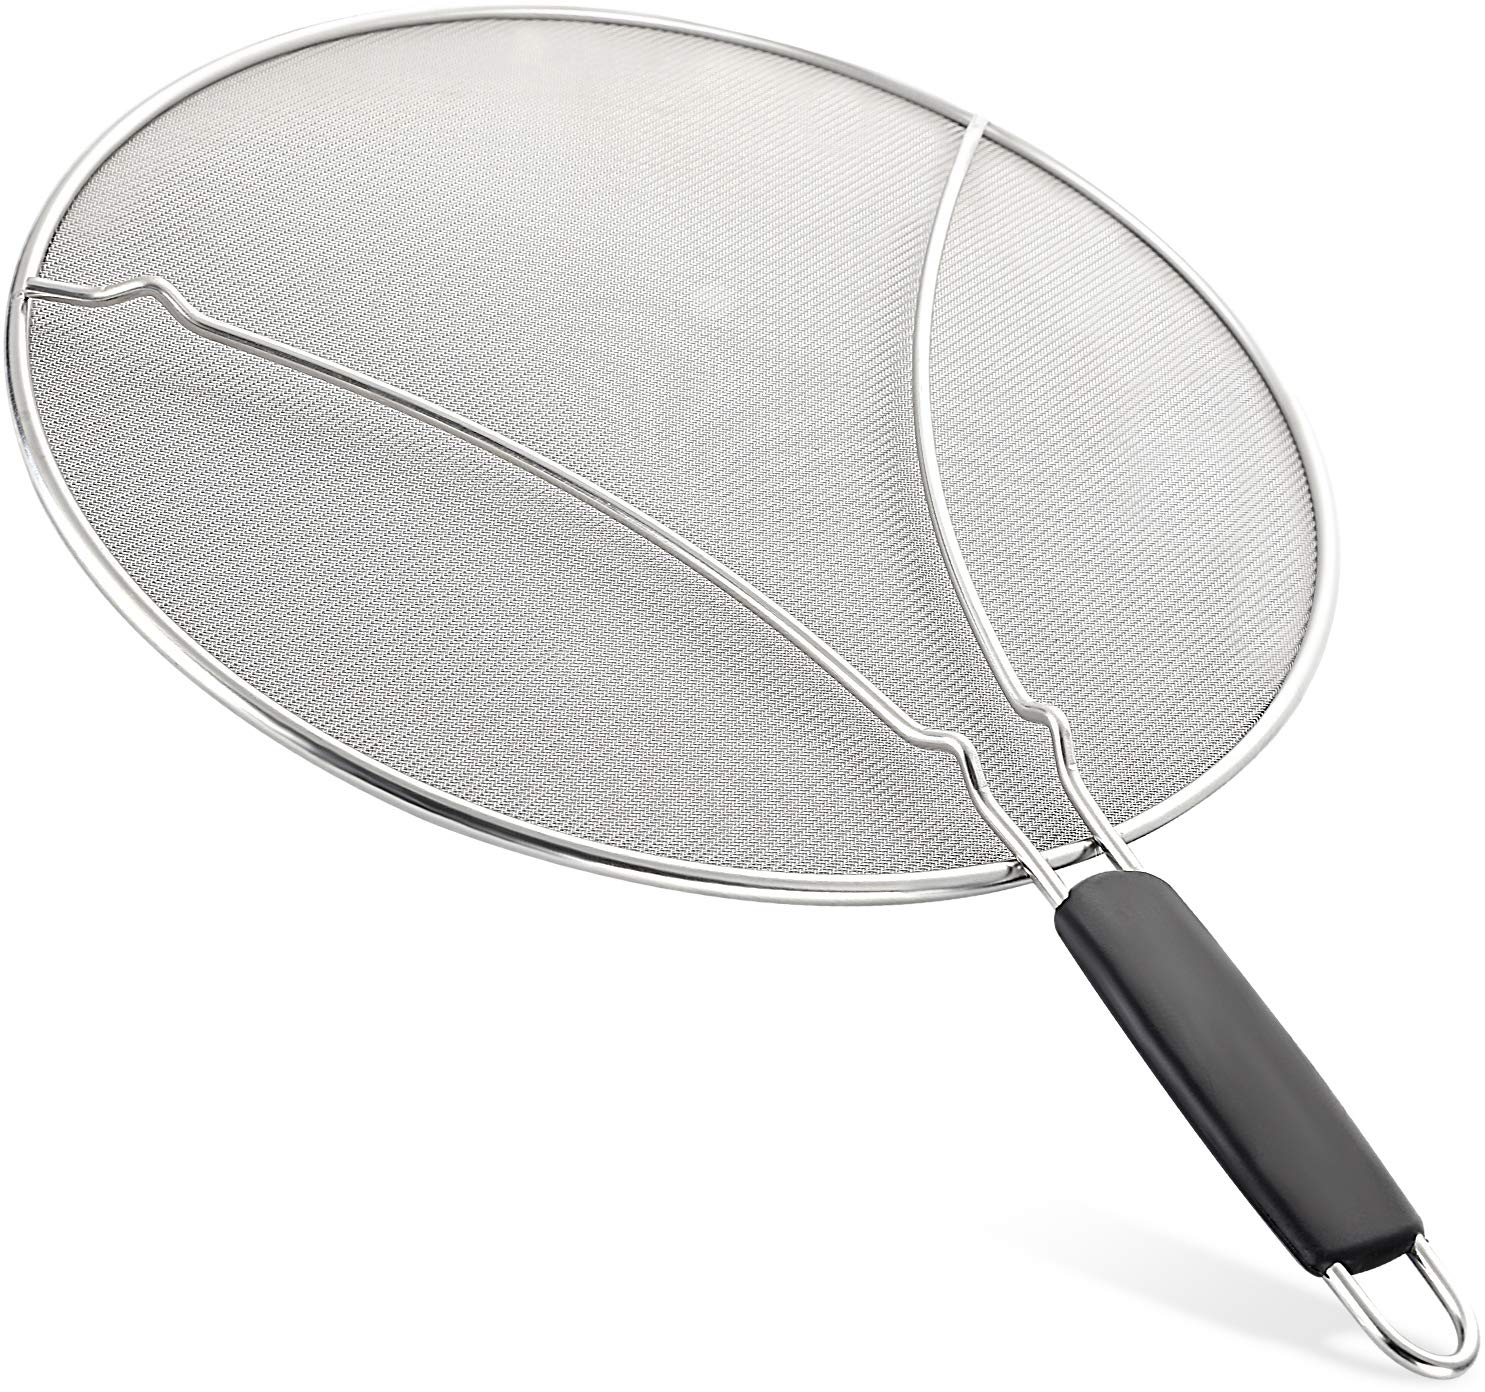 "Splatter Screen for Frying Pan - Large 13"" Stainless Steel Grease Guard Shield and Catcher - Stops Almost 100% of Hot Oil Splash - Keeps Stove and Pans Clean & Prevents Burns When Cooking"